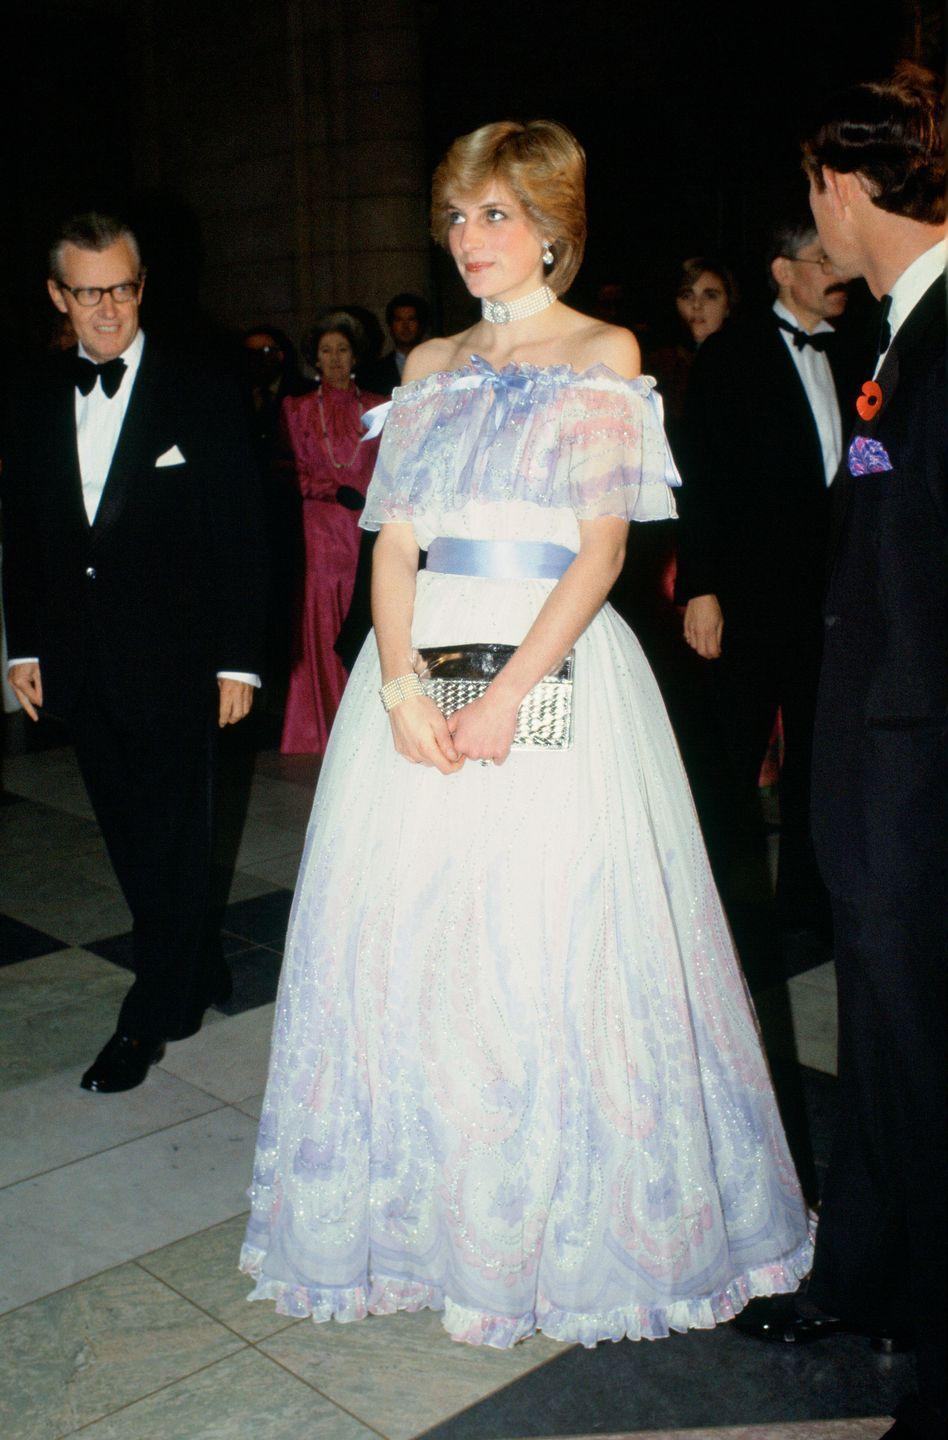 <p>Princess Diana wore an off-the-shoulder chiffon evening gown, designed by Bellville Sassoon, in 1981. The Princess was famously photographed asleep while attending the event and, as a result, the palace revealed she was expecting her first child. </p>